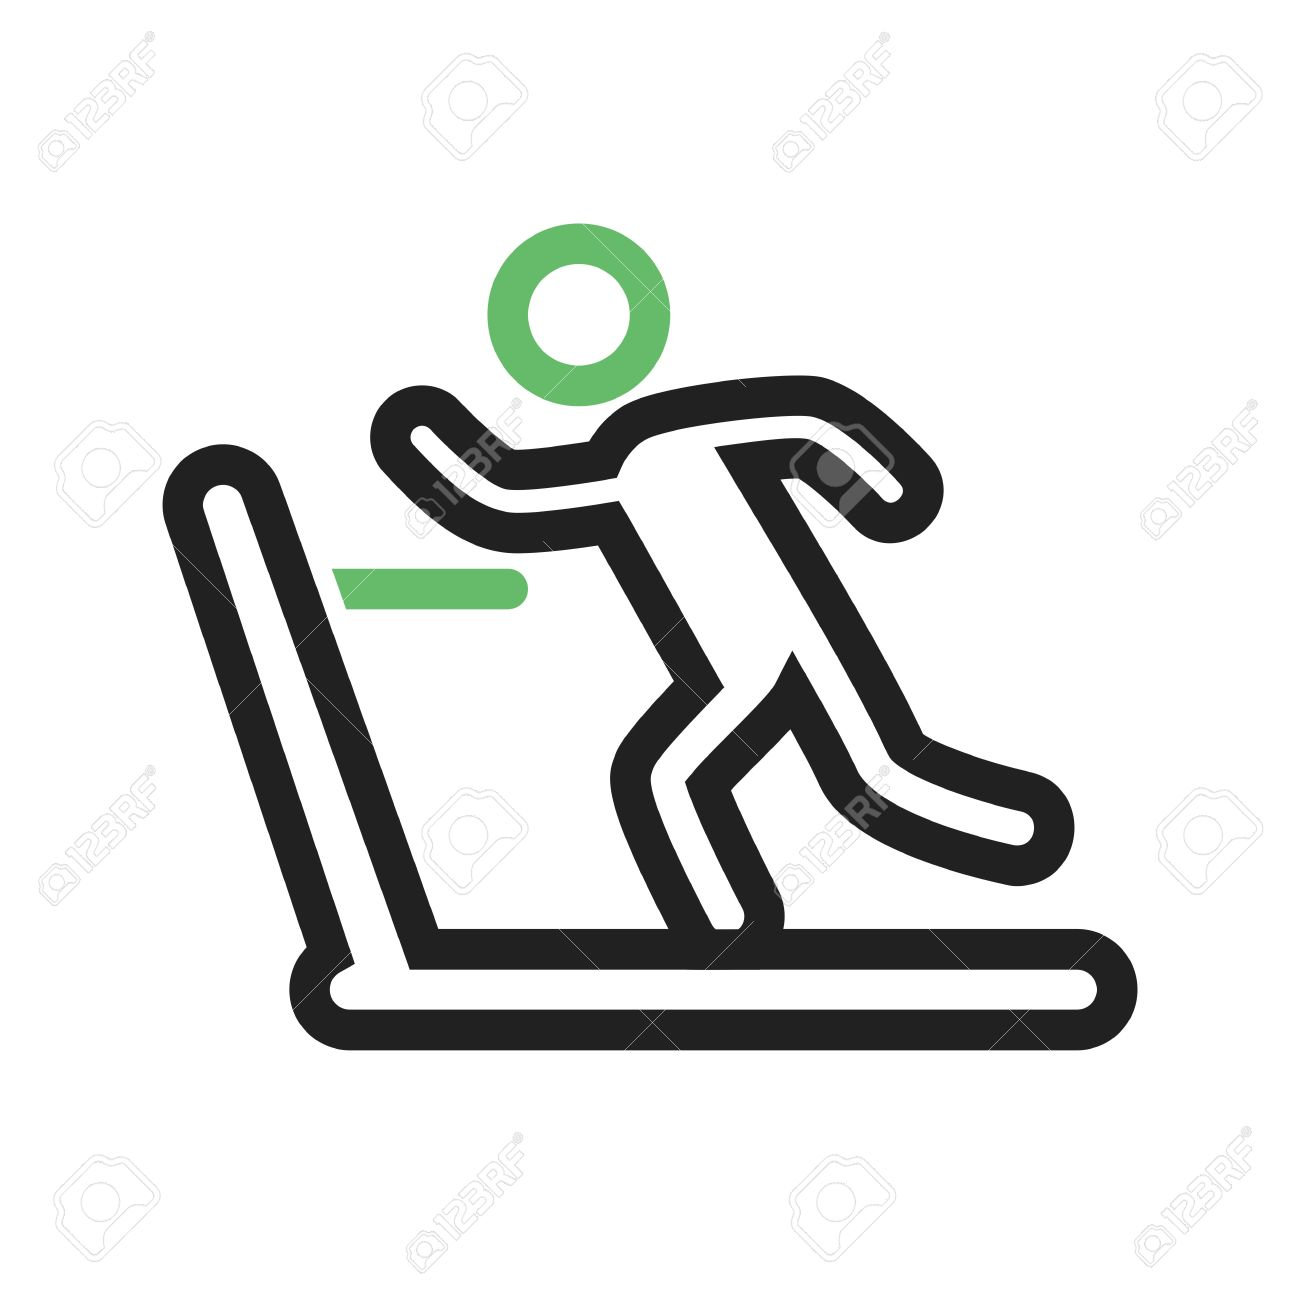 1300x1300 Running, Treadmill, Exercise, Gym Icon Vector Image. Can Also